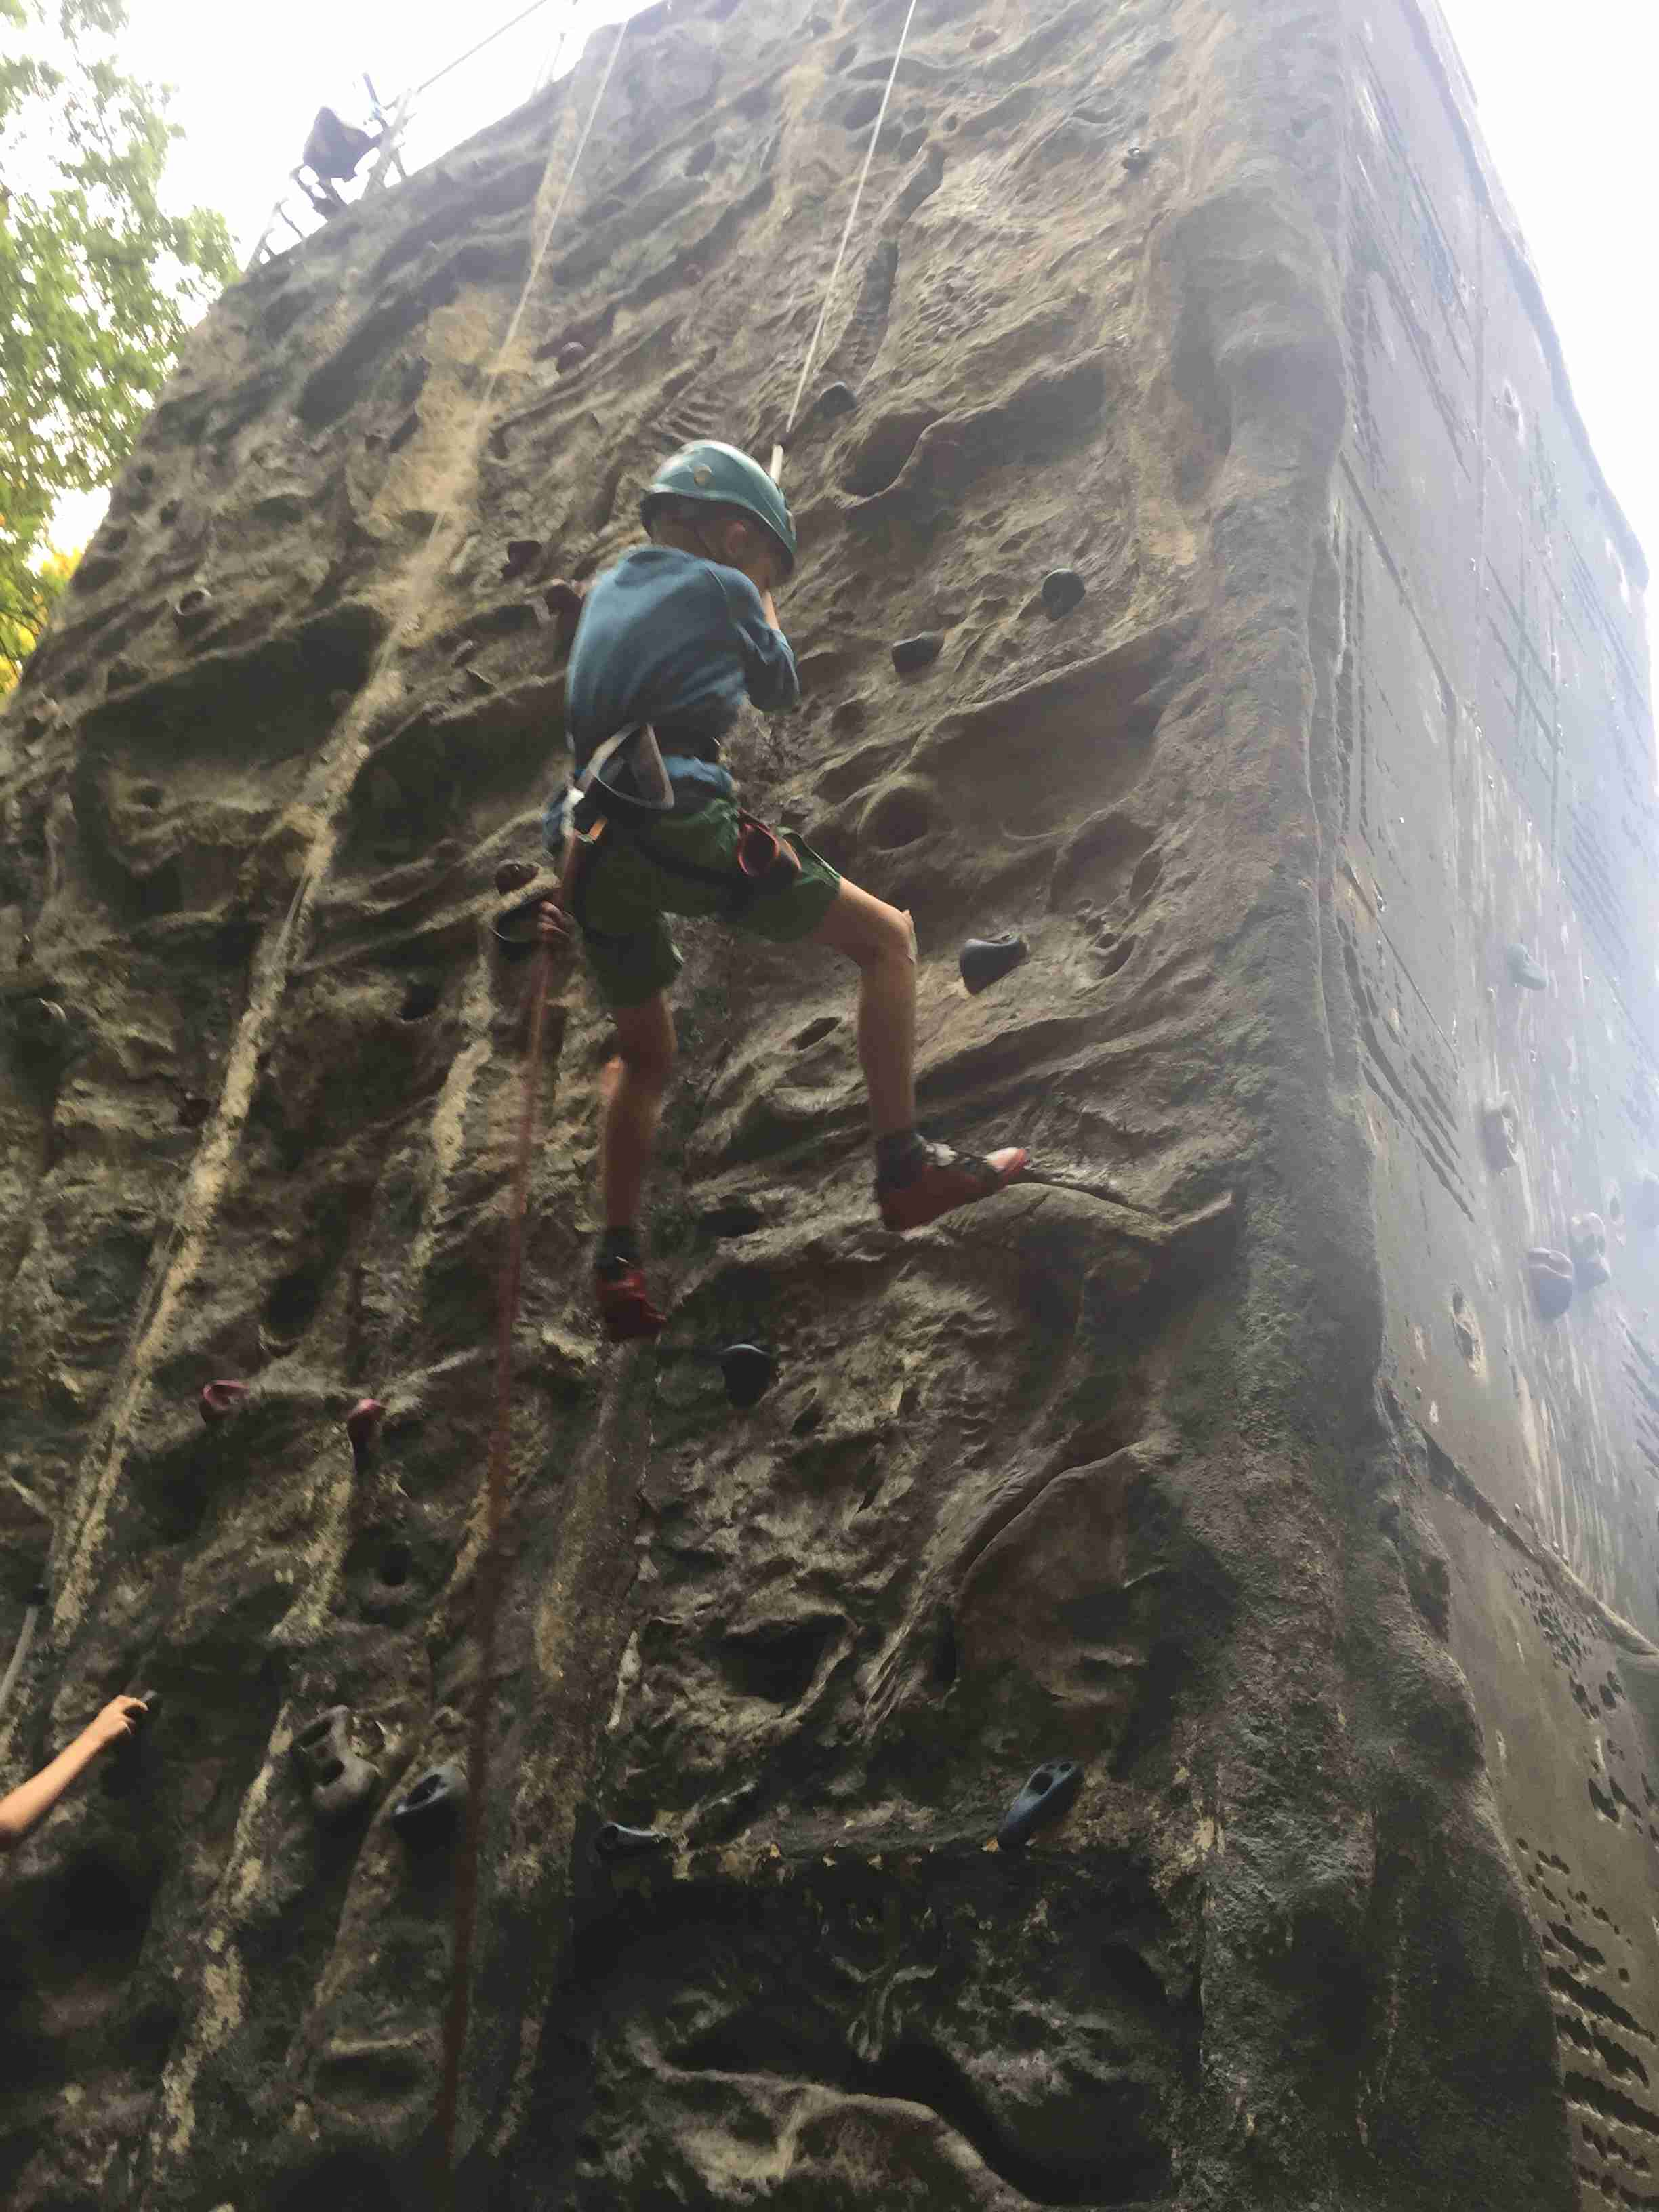 2017-10-06 7M Holiday Climbing PW (3)